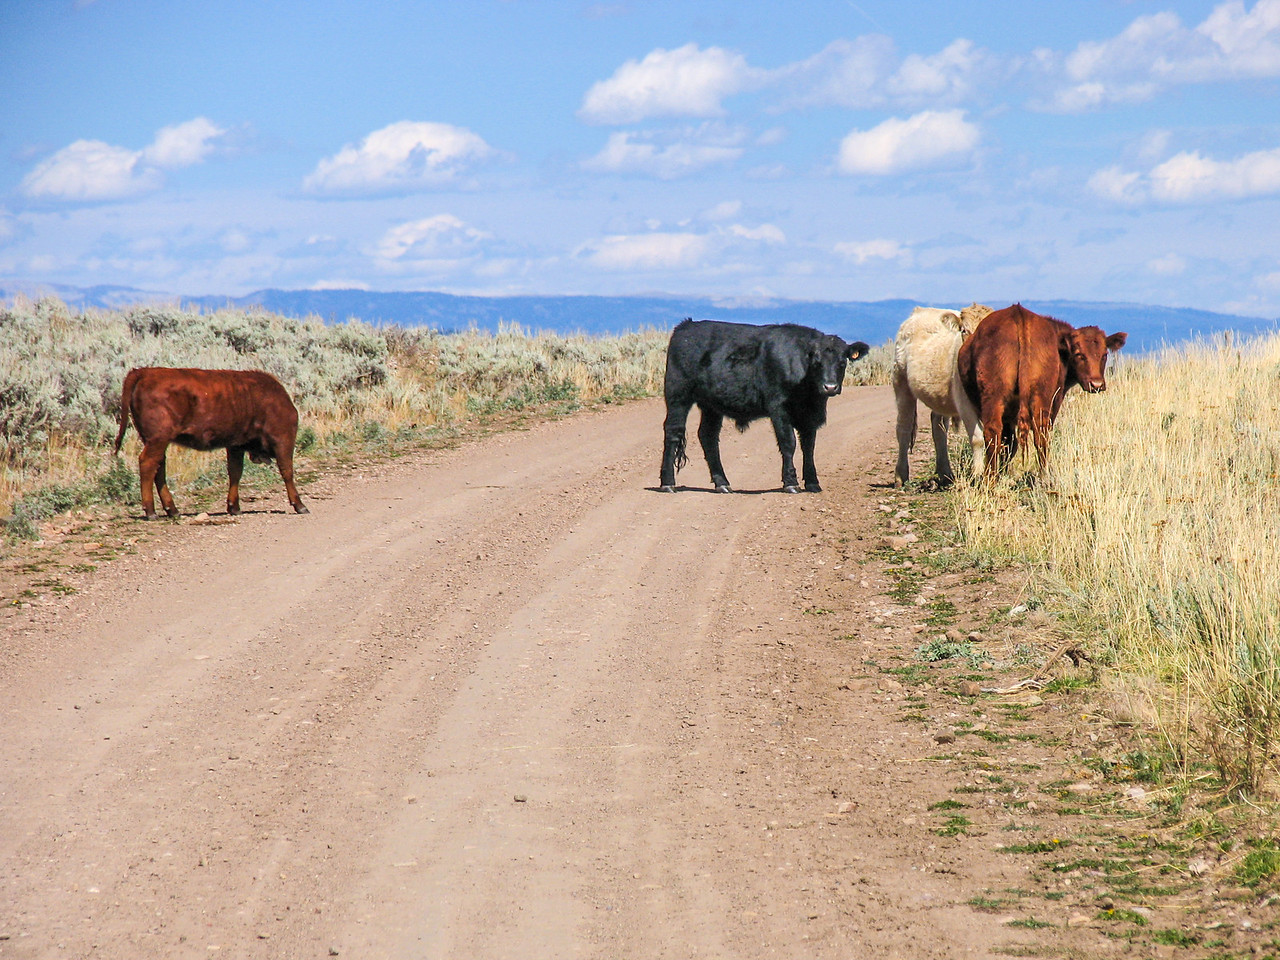 Cattle slow to clear the road, Bridger-Teton National Forest - September 2004